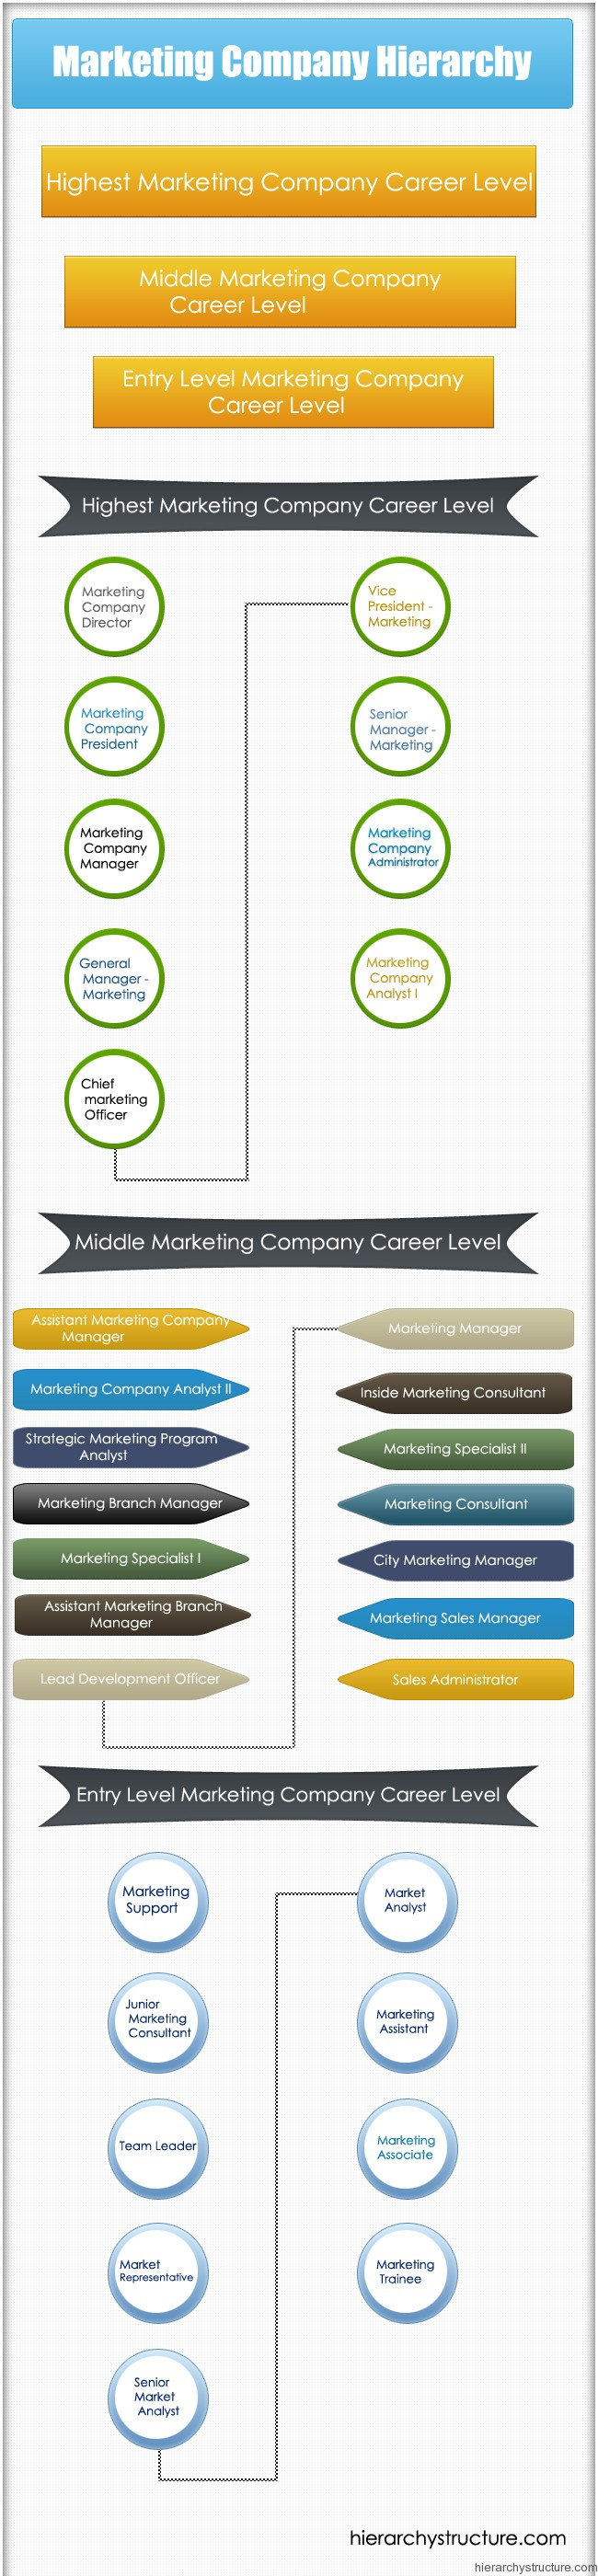 Marketing Company Hierarchy